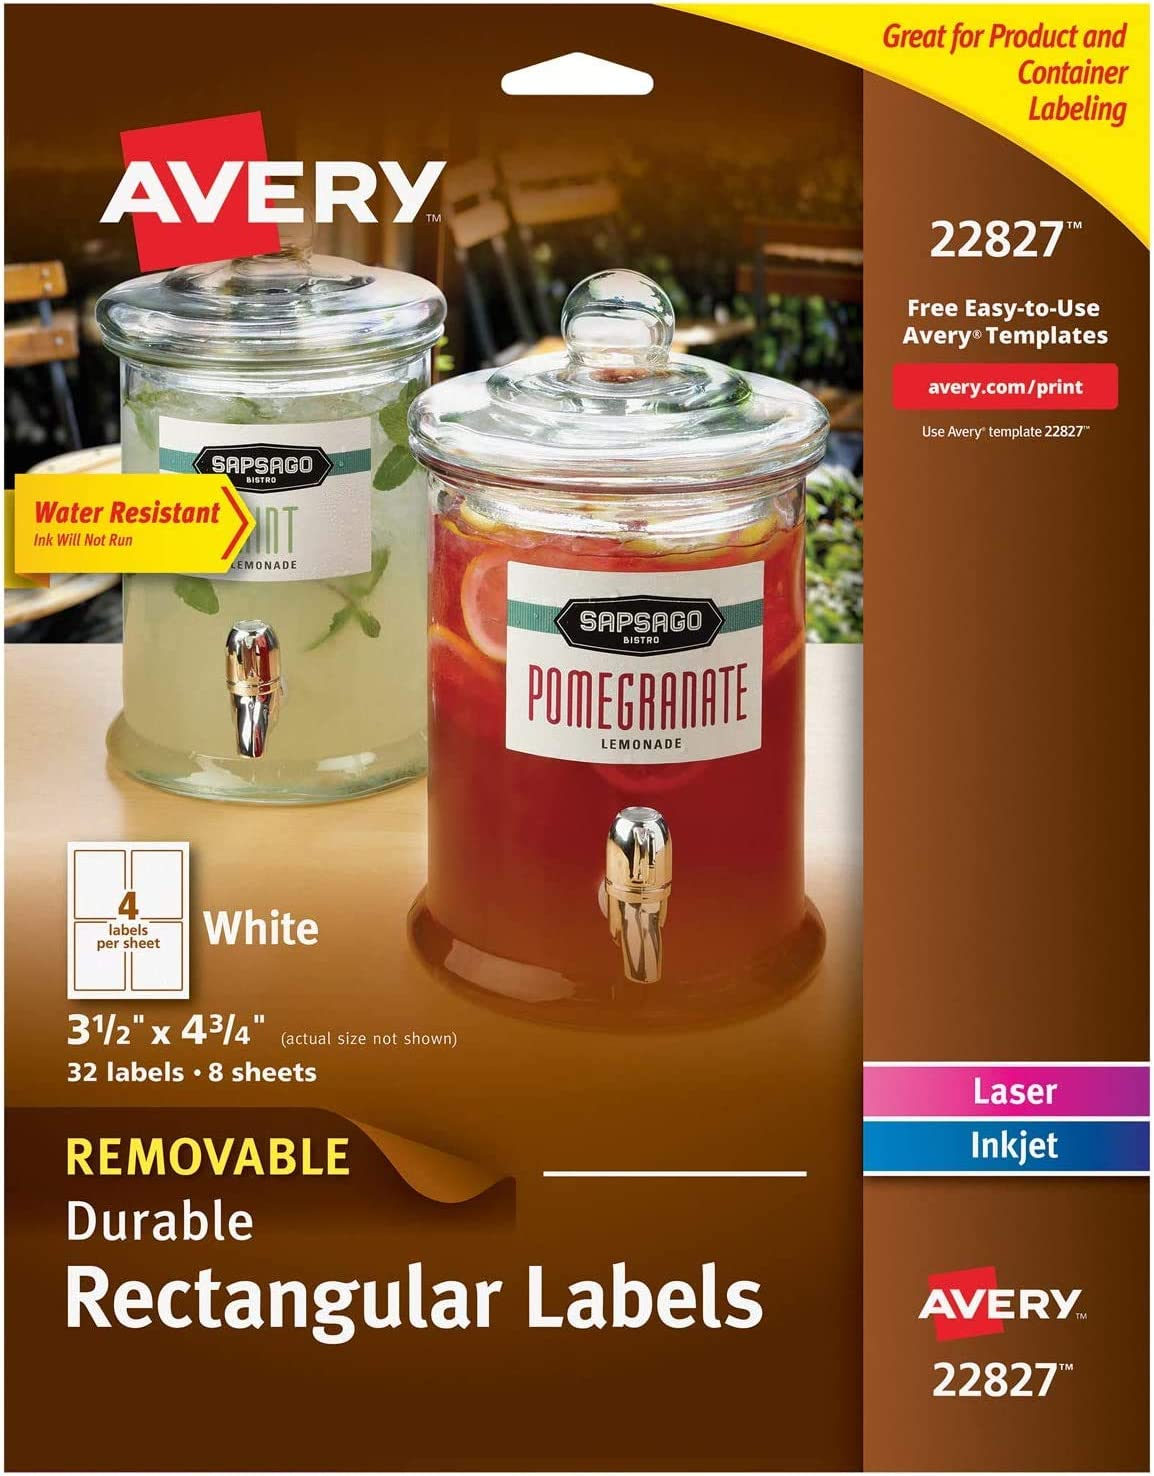 Pack of 2 Avery Removable Labels with Sure Feed for Laser /& Inkjet Printers 22827 32 Labels 3.5 x 4.75